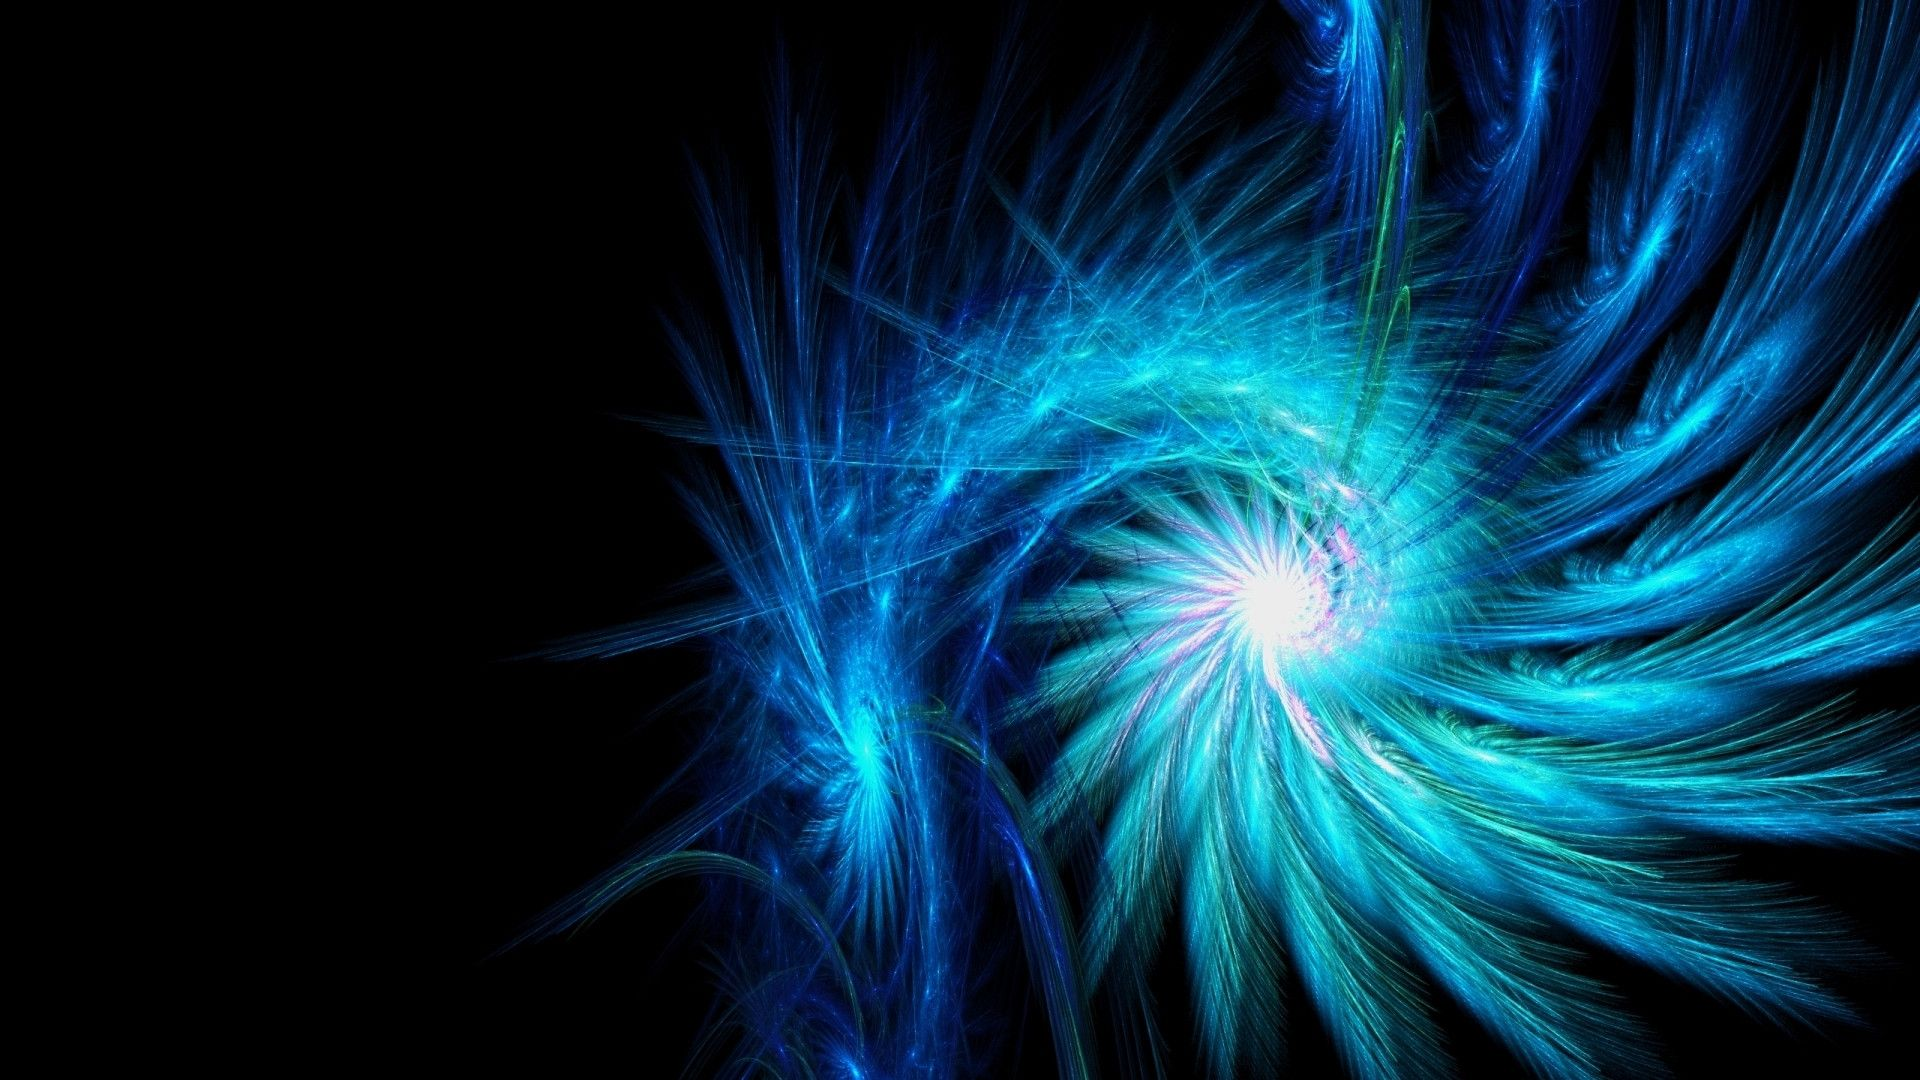 Blue Neon Wallpaper Spiral Light Background Dark Wallpapers 1920x1080